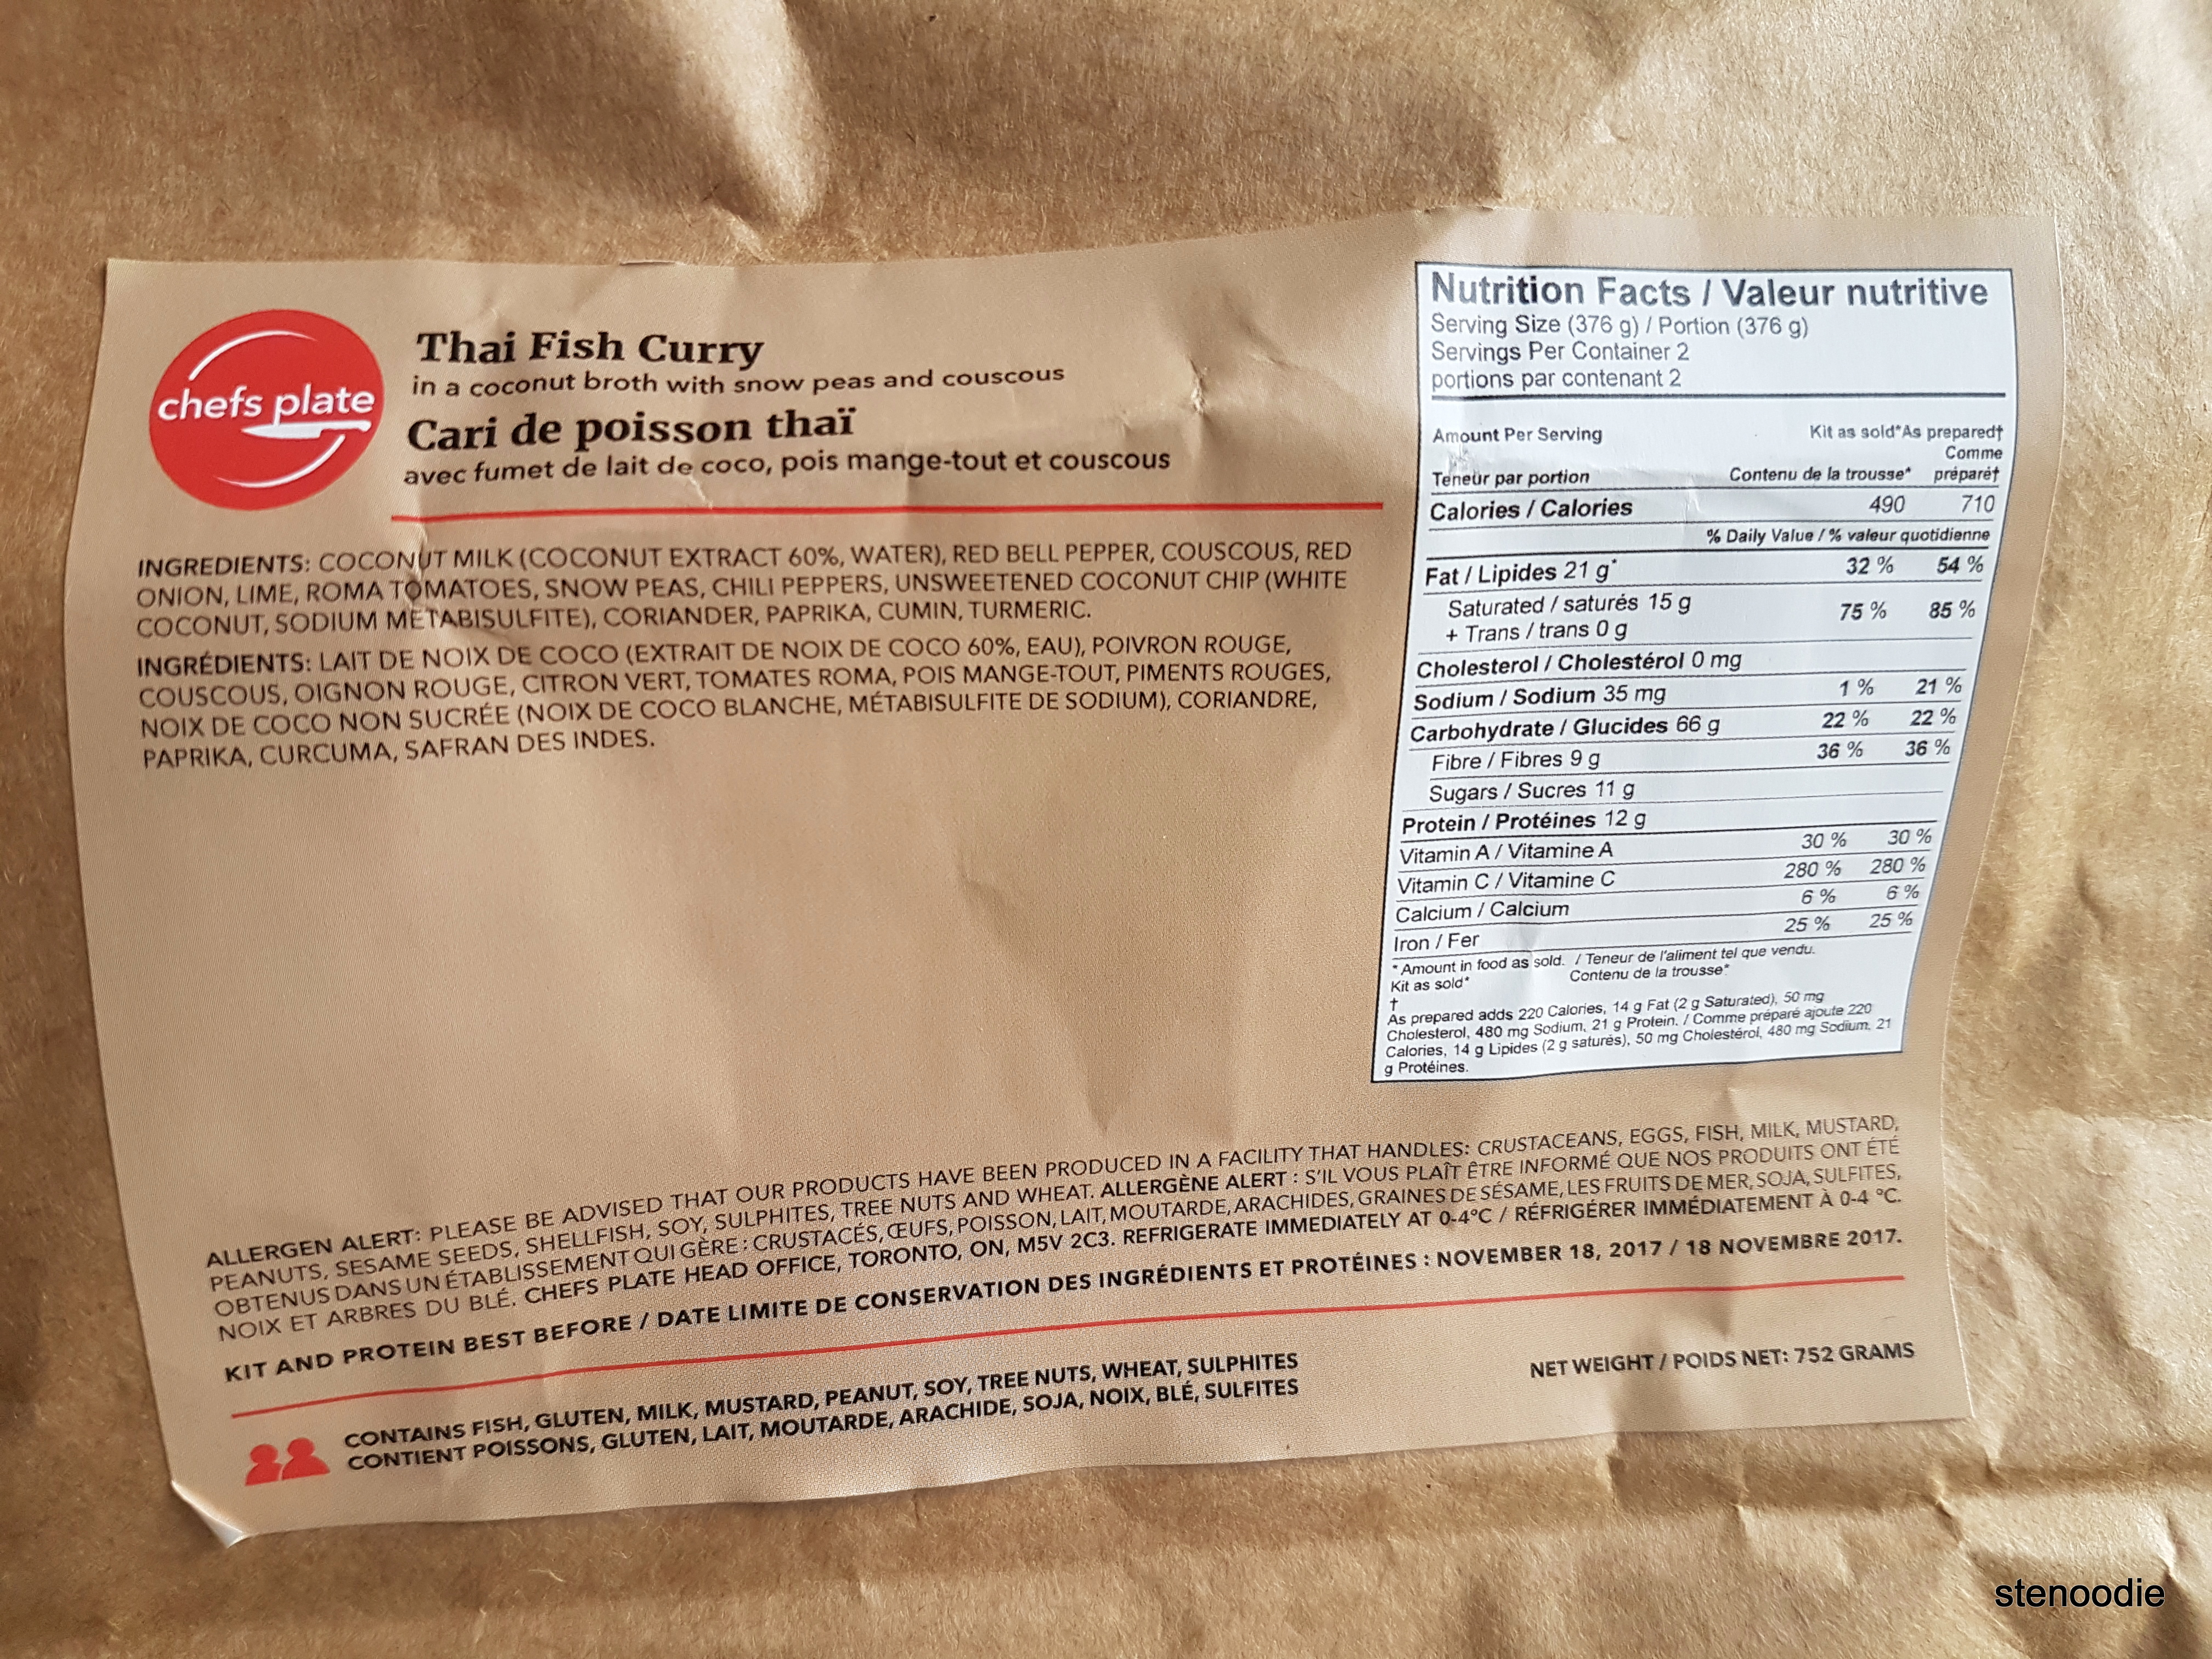 Thai Fish Curry nutrition information